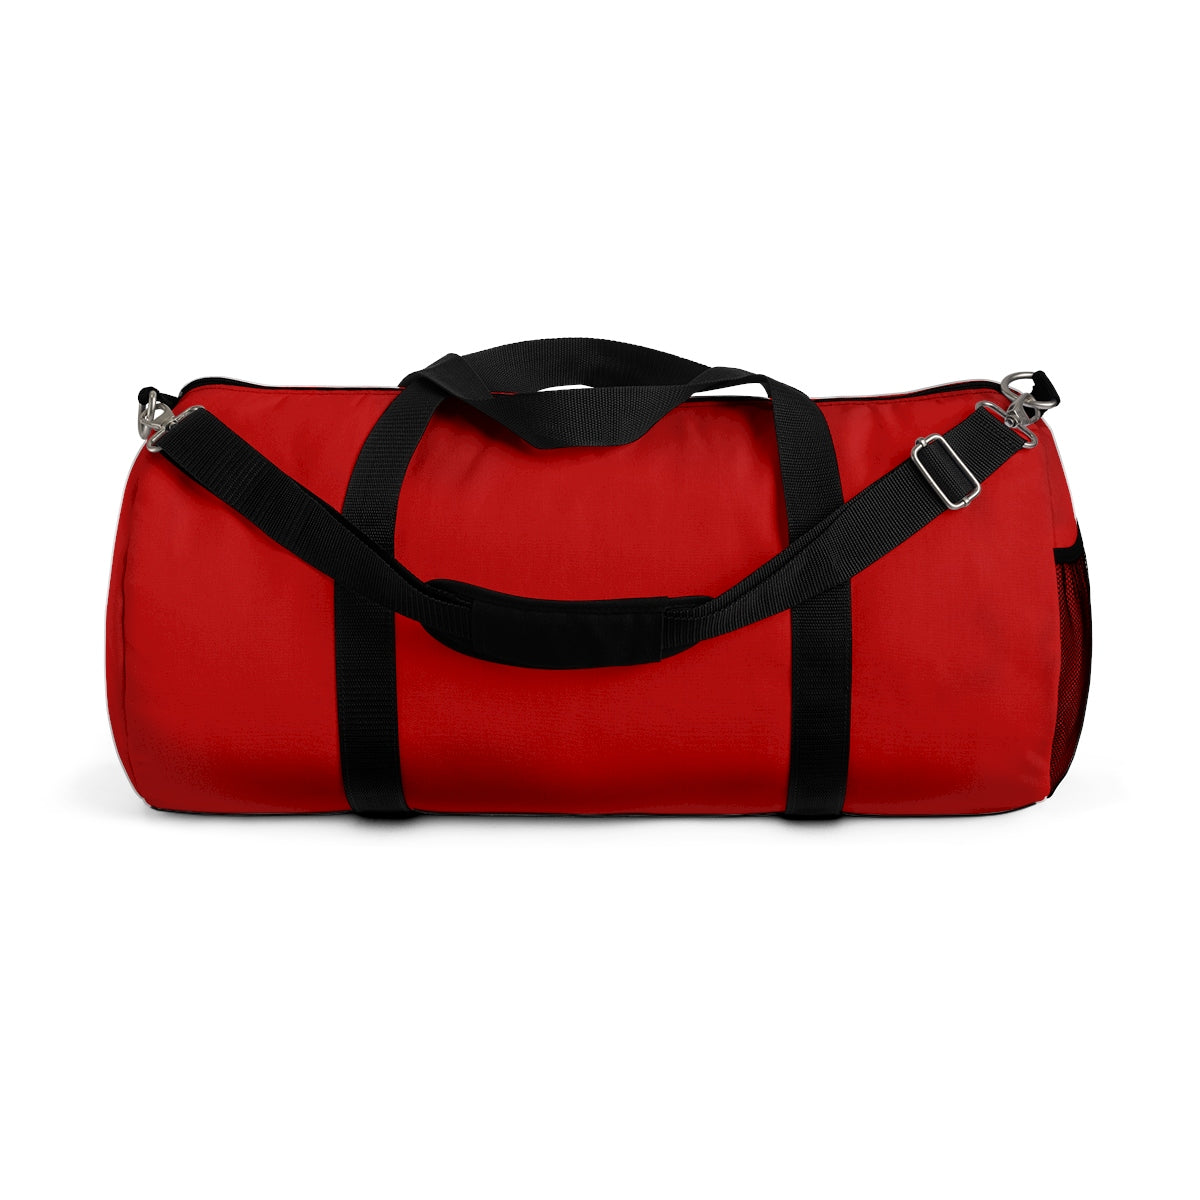 Red Solid Color All Day Small Or Large Size Duffel Bag, Made in USA-Duffel Bag-Small-Heidi Kimura Art LLC